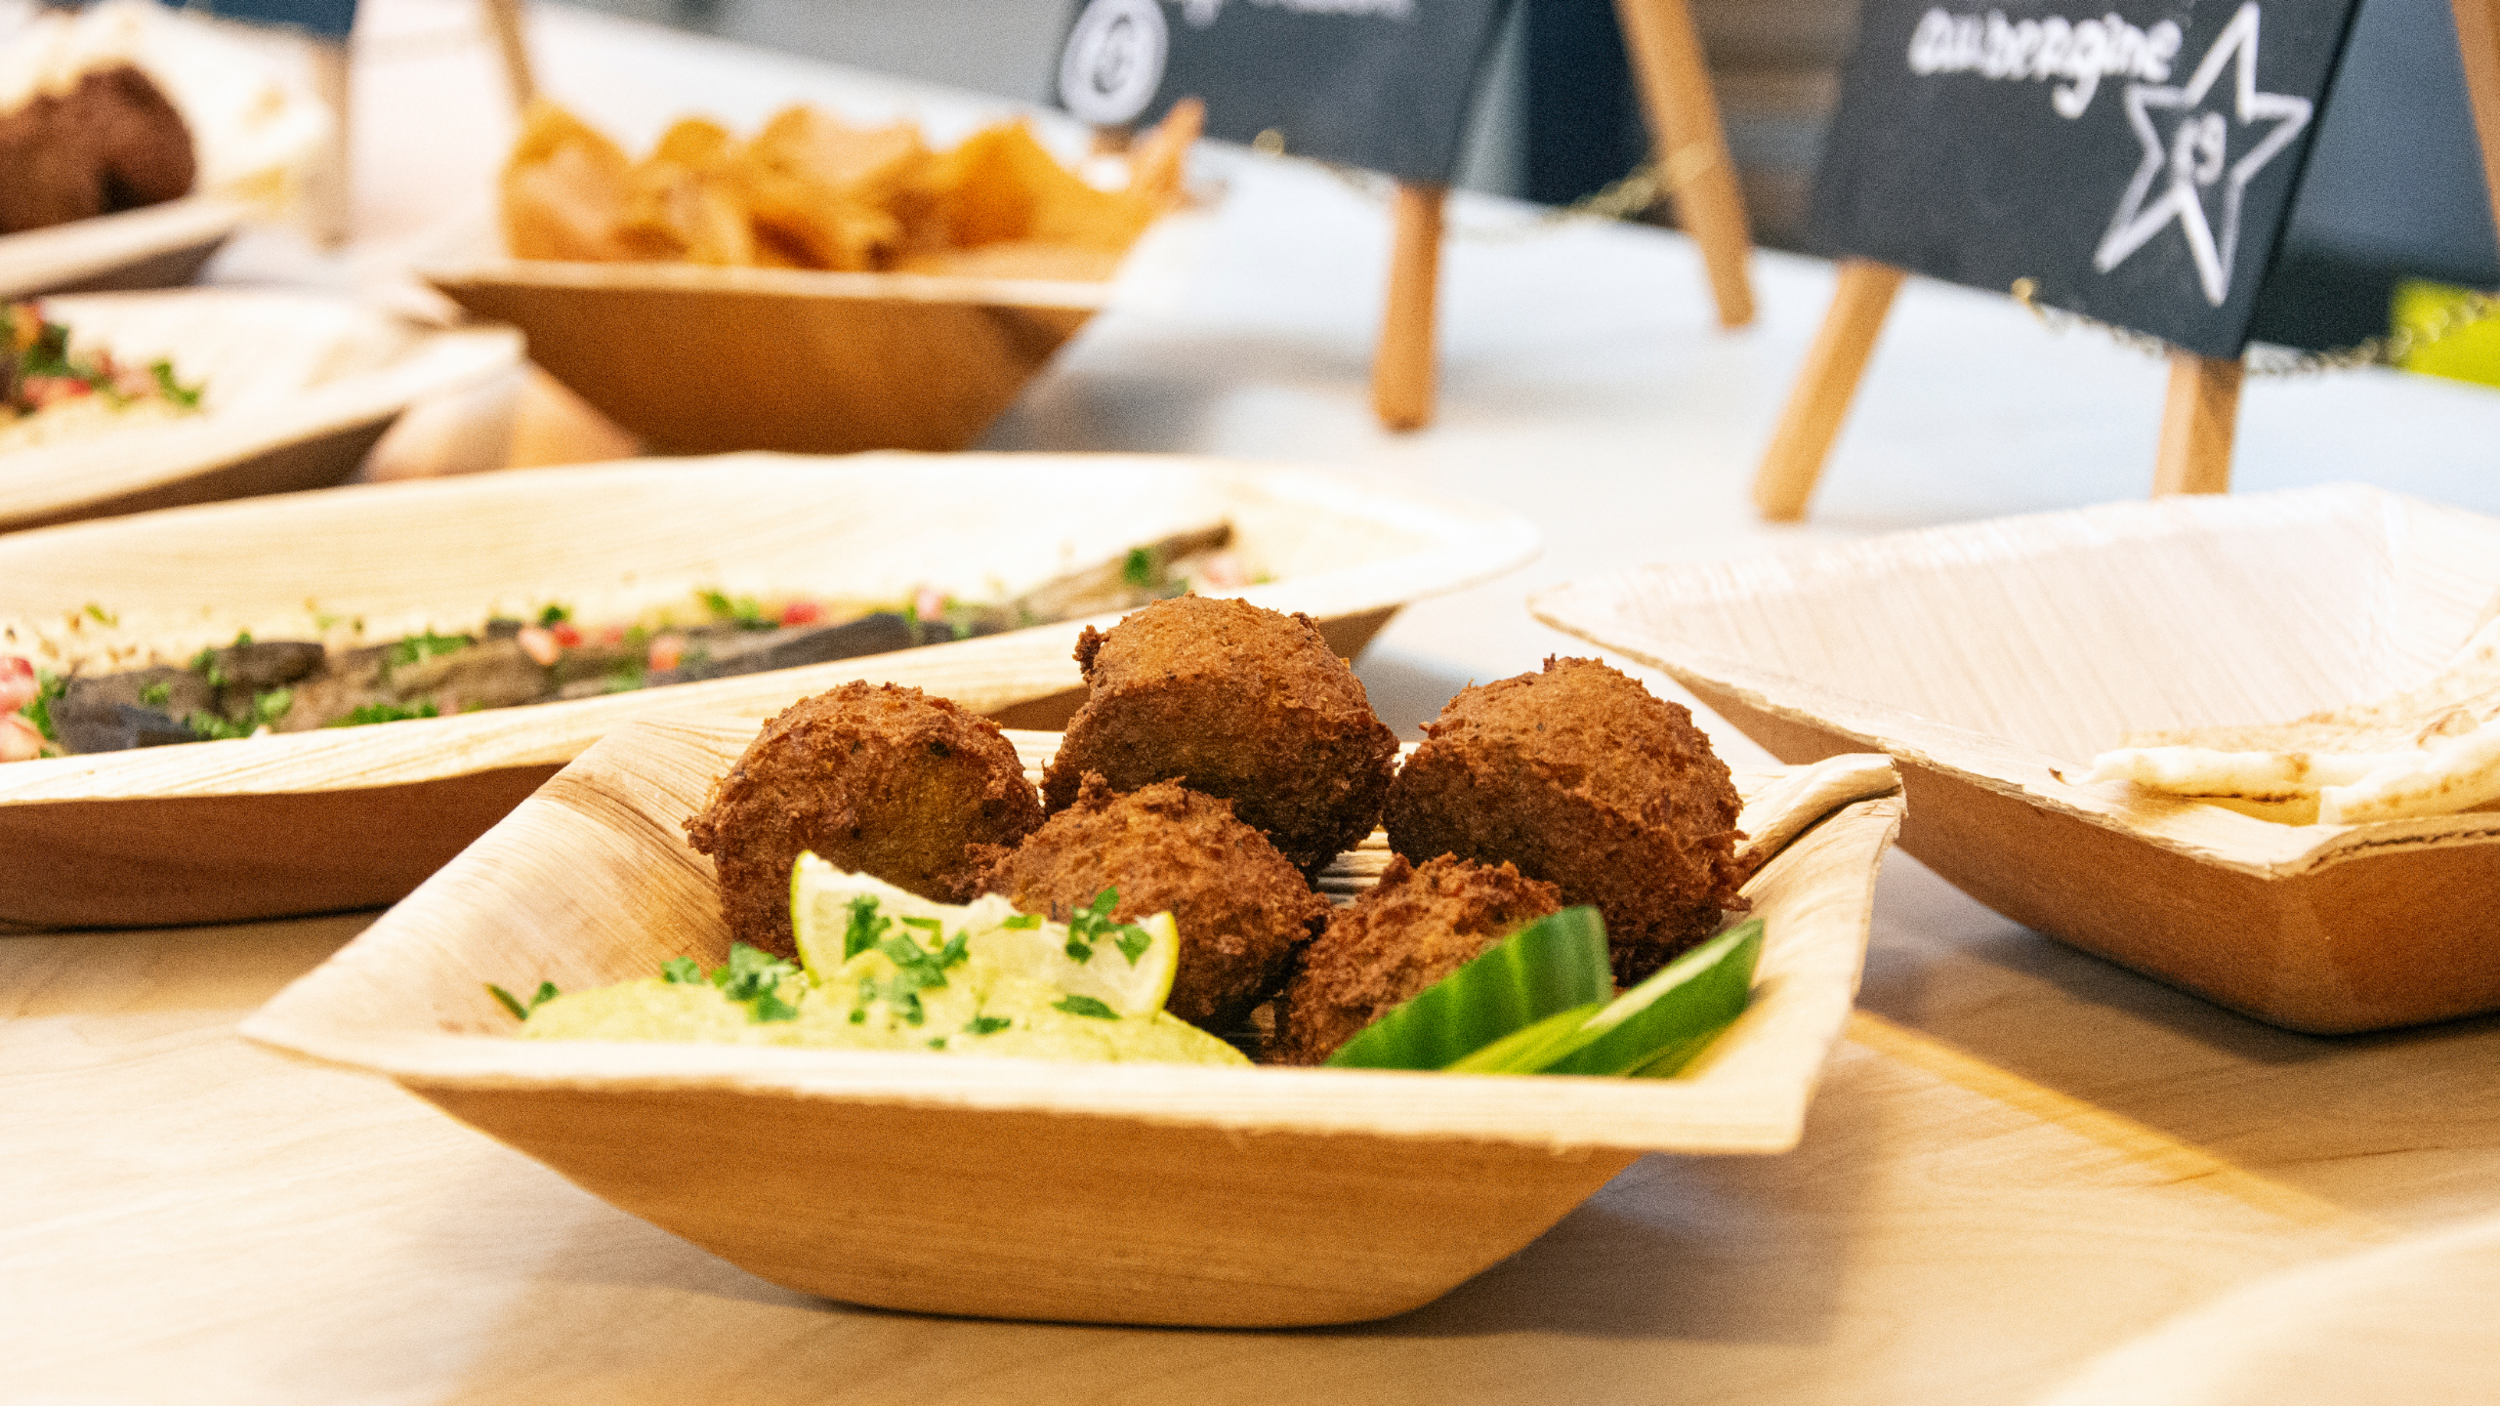 Falafel in Israel is one of the most popular dishes of Jerusalem cuisine.